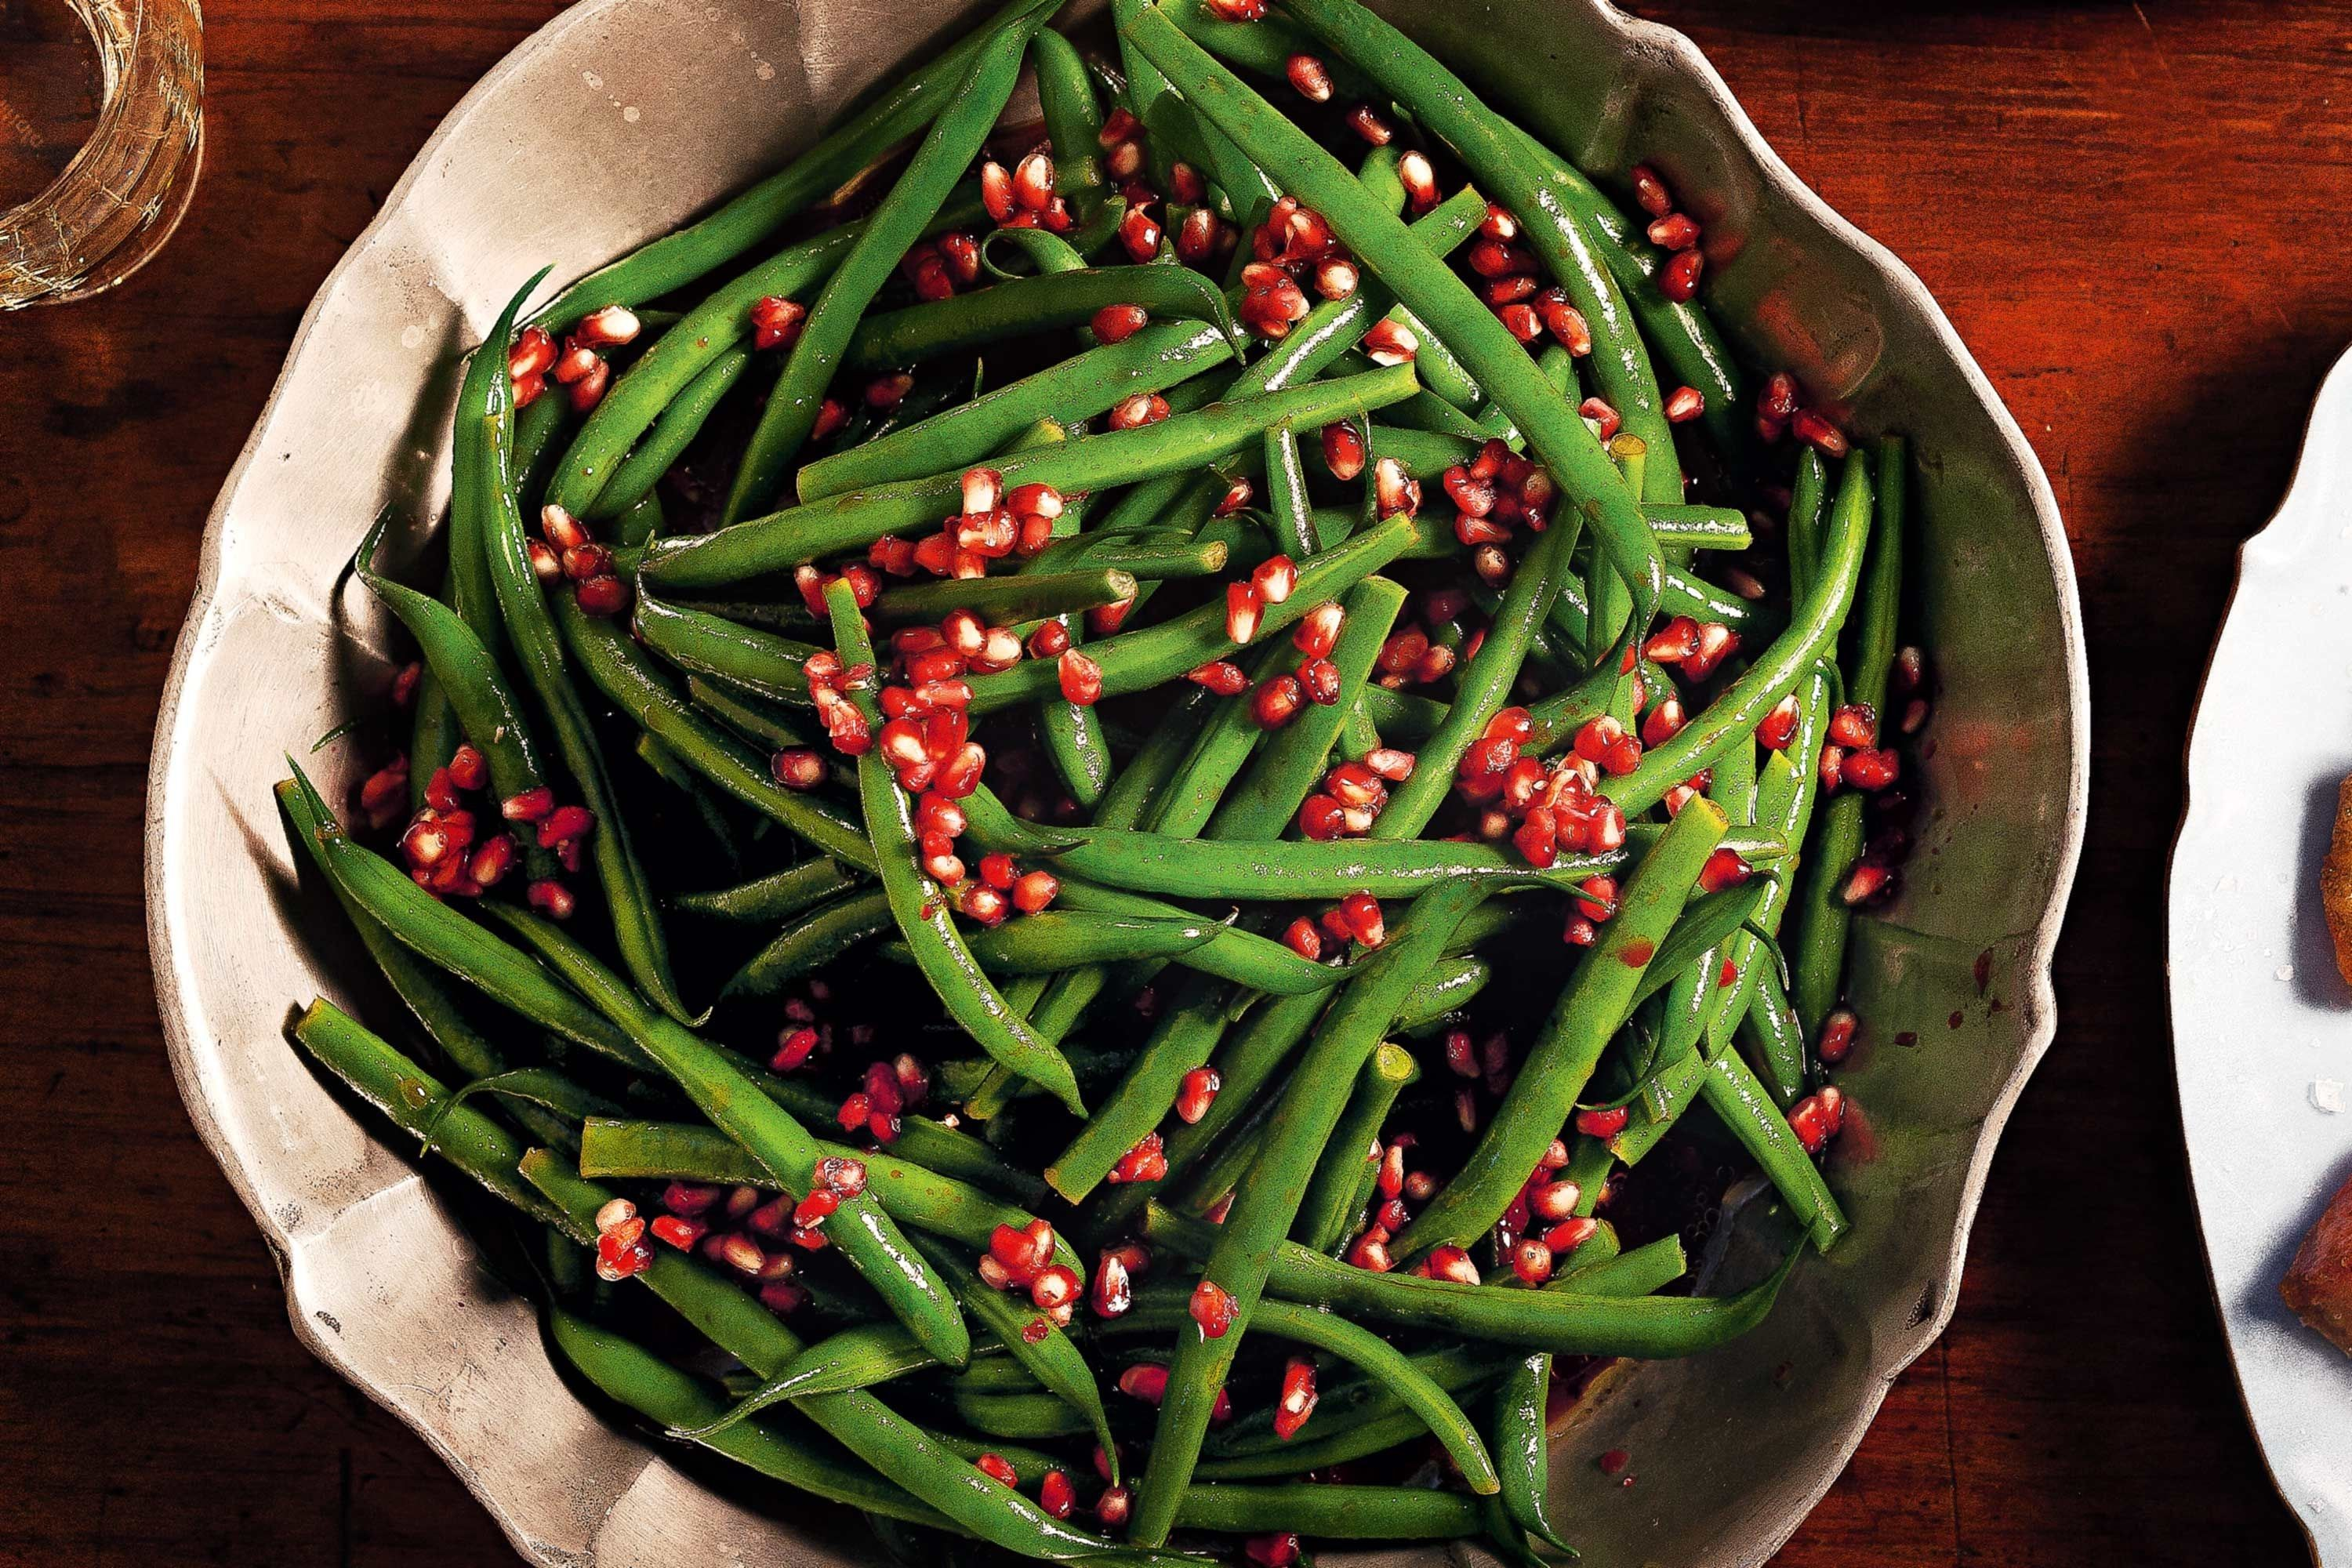 green beans with pomegranate recipe christmas pinterest christmas side dishes christmas side and green beans - Christmas Side Dishes Pinterest